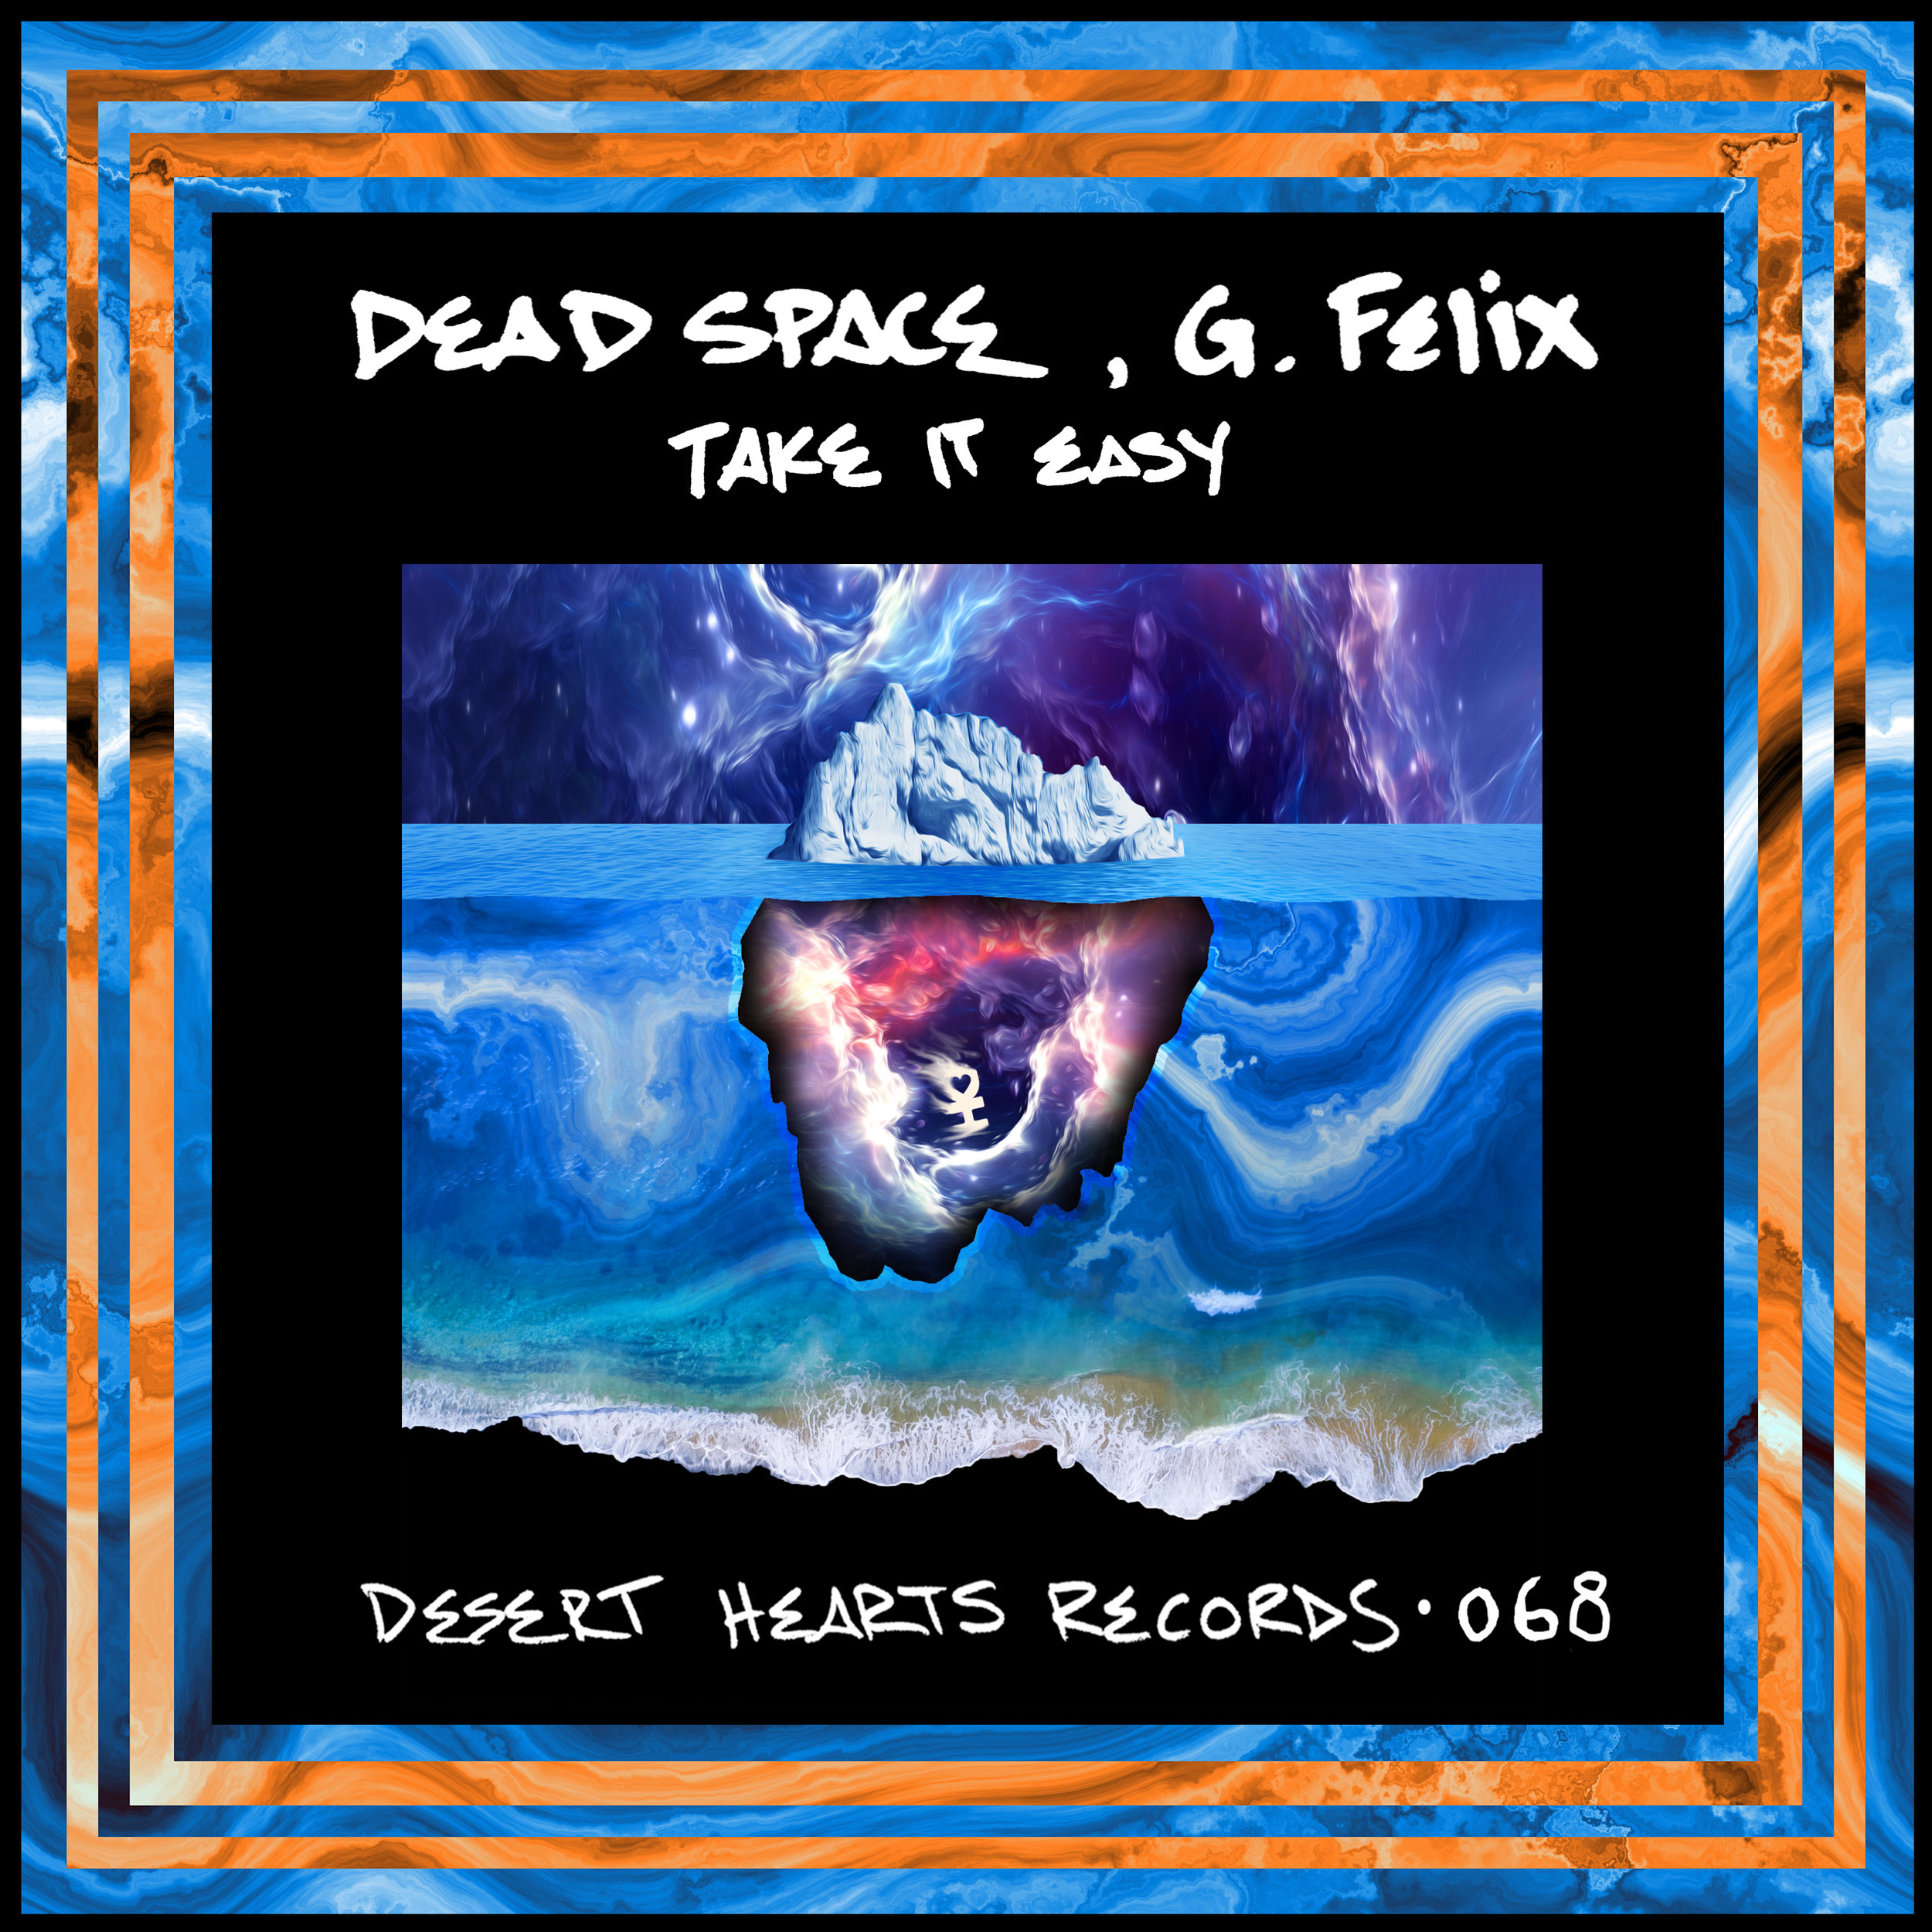 [DH068] Dead Space, G. Felix - Take It Easy EP.jpg